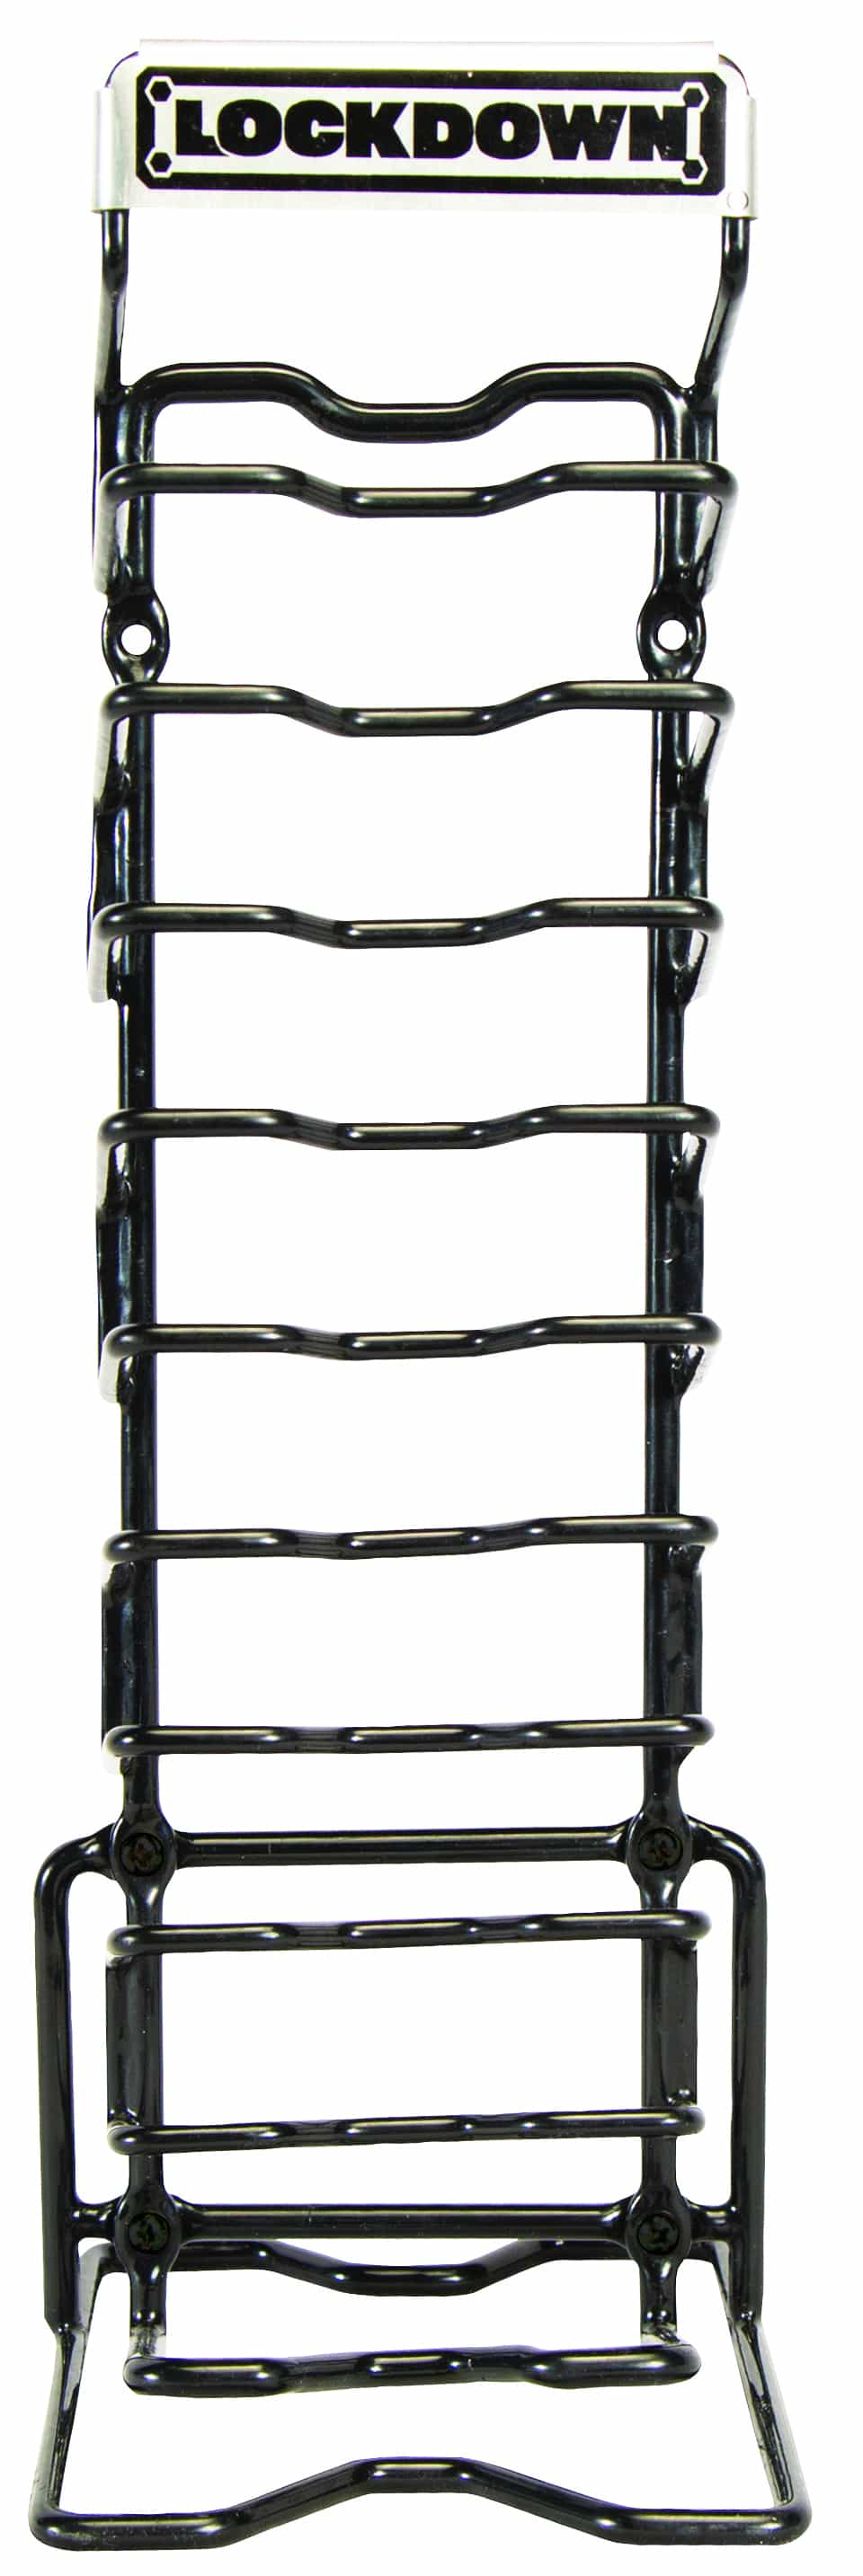 AR-15 Magazine Rack - 222972 Lockdown Empty Mag Rack